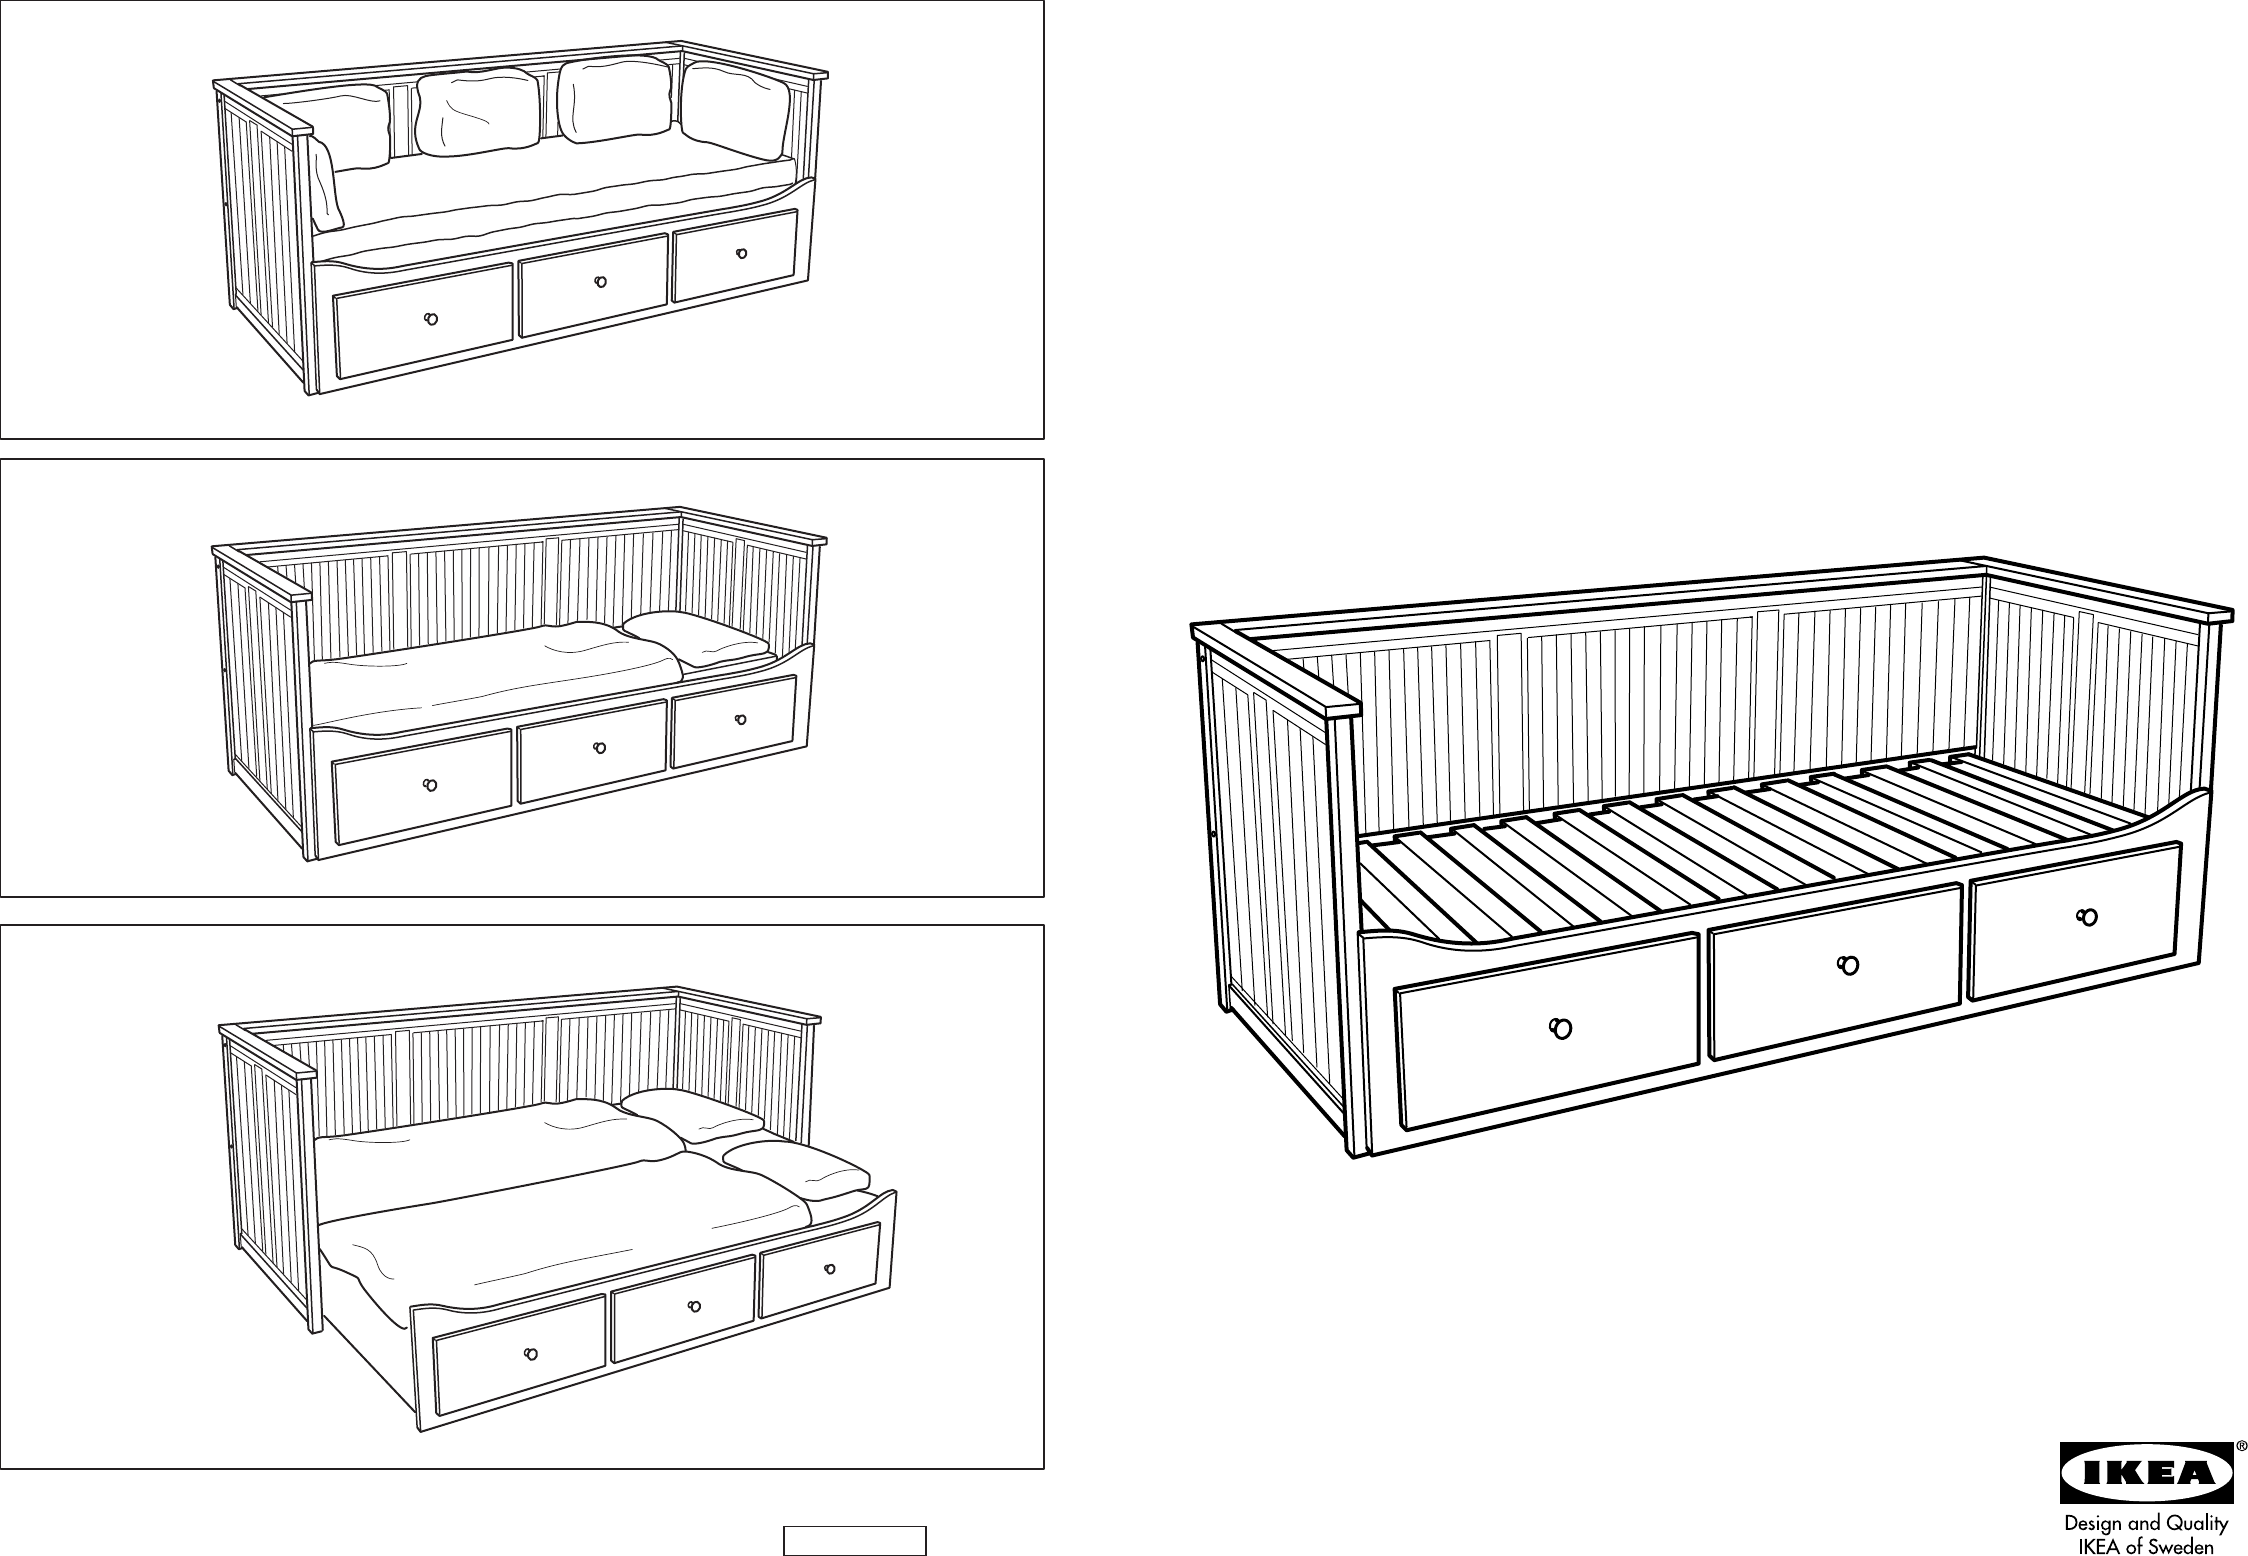 Slaapbank Hemnes Ikea.Manual Ikea Hemnes Bedbank Page 3 Of 12 Danish German English